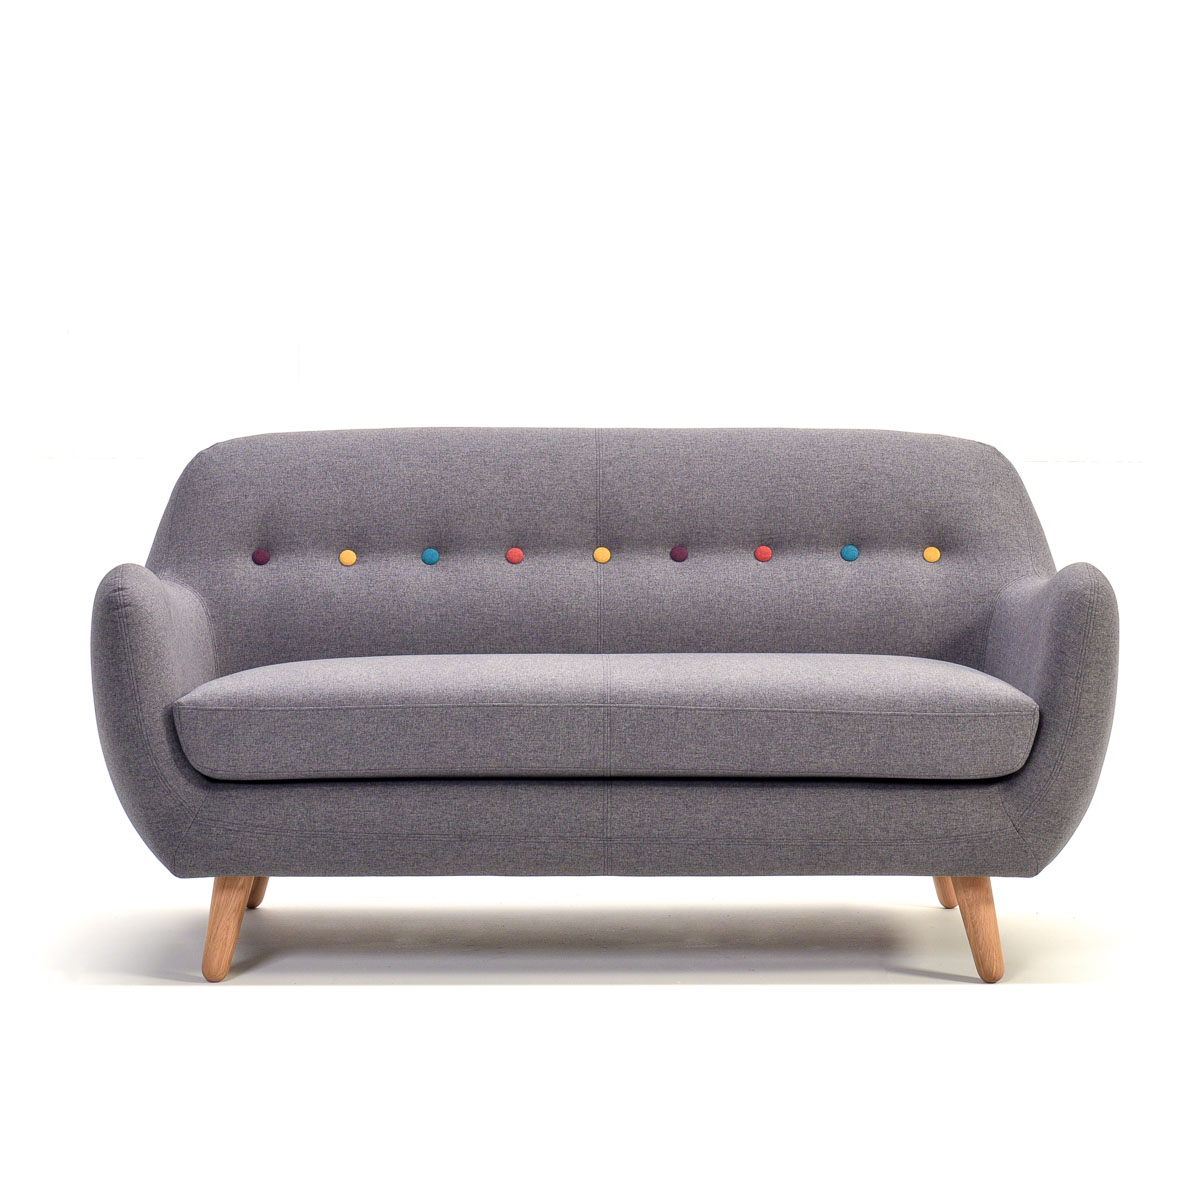 Walter 2 Seater Sofa